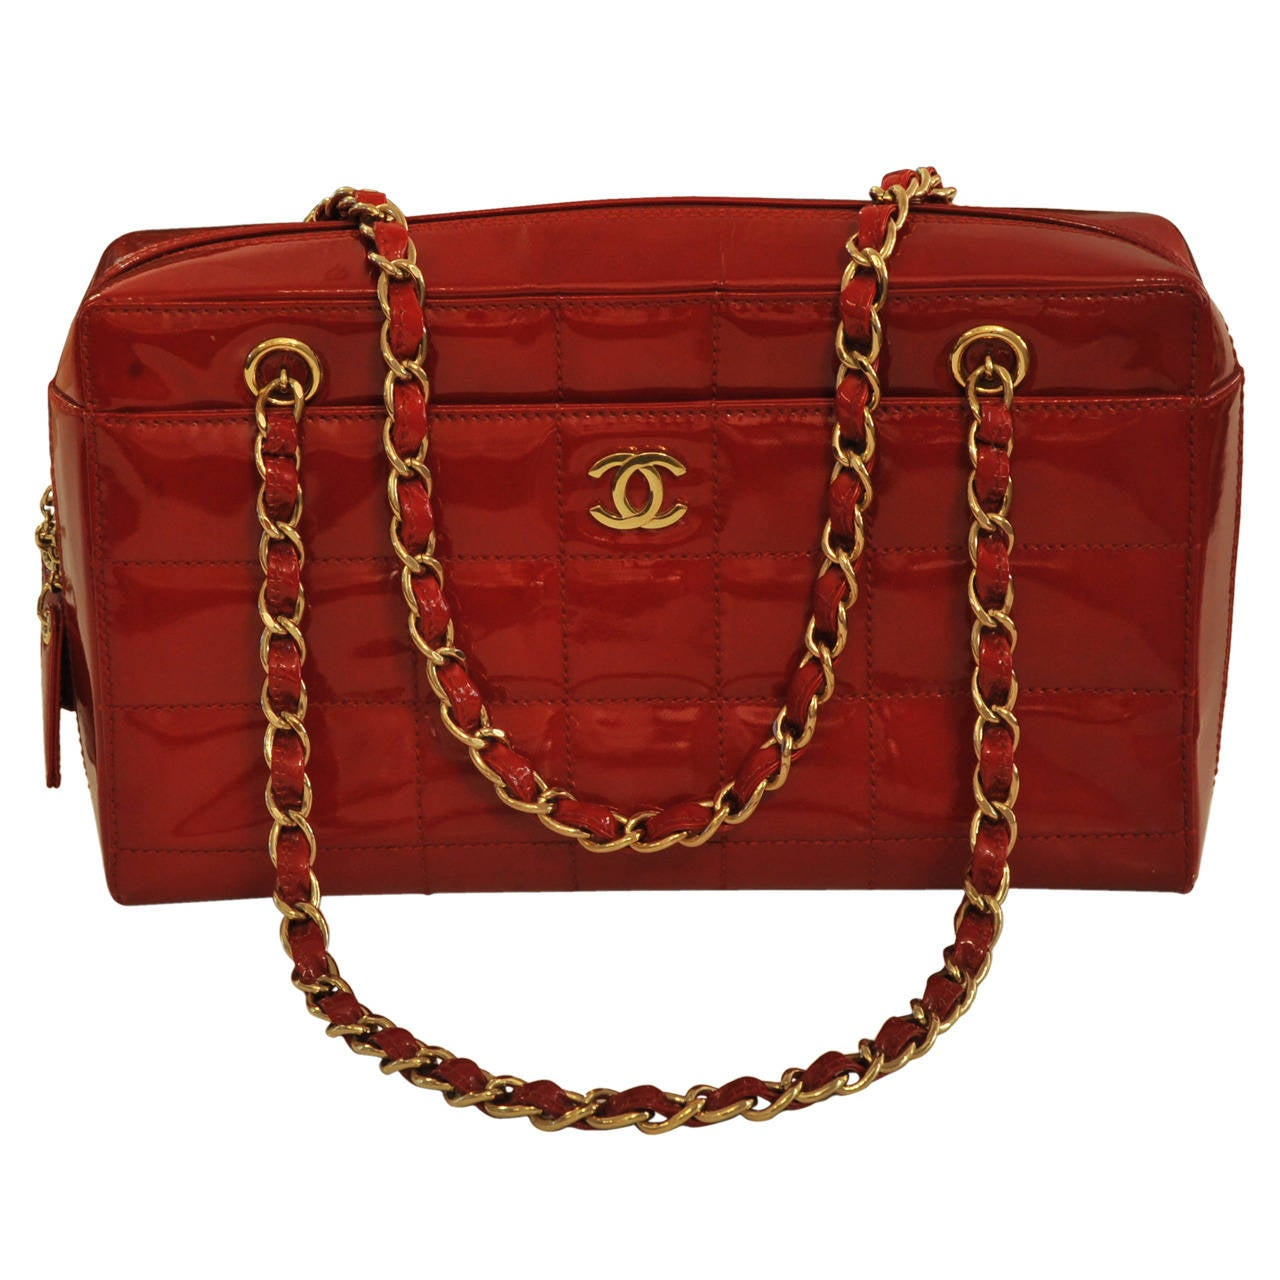 57097a2cc0ea Chanel Red Patent Leather Bag | Stanford Center for Opportunity ...